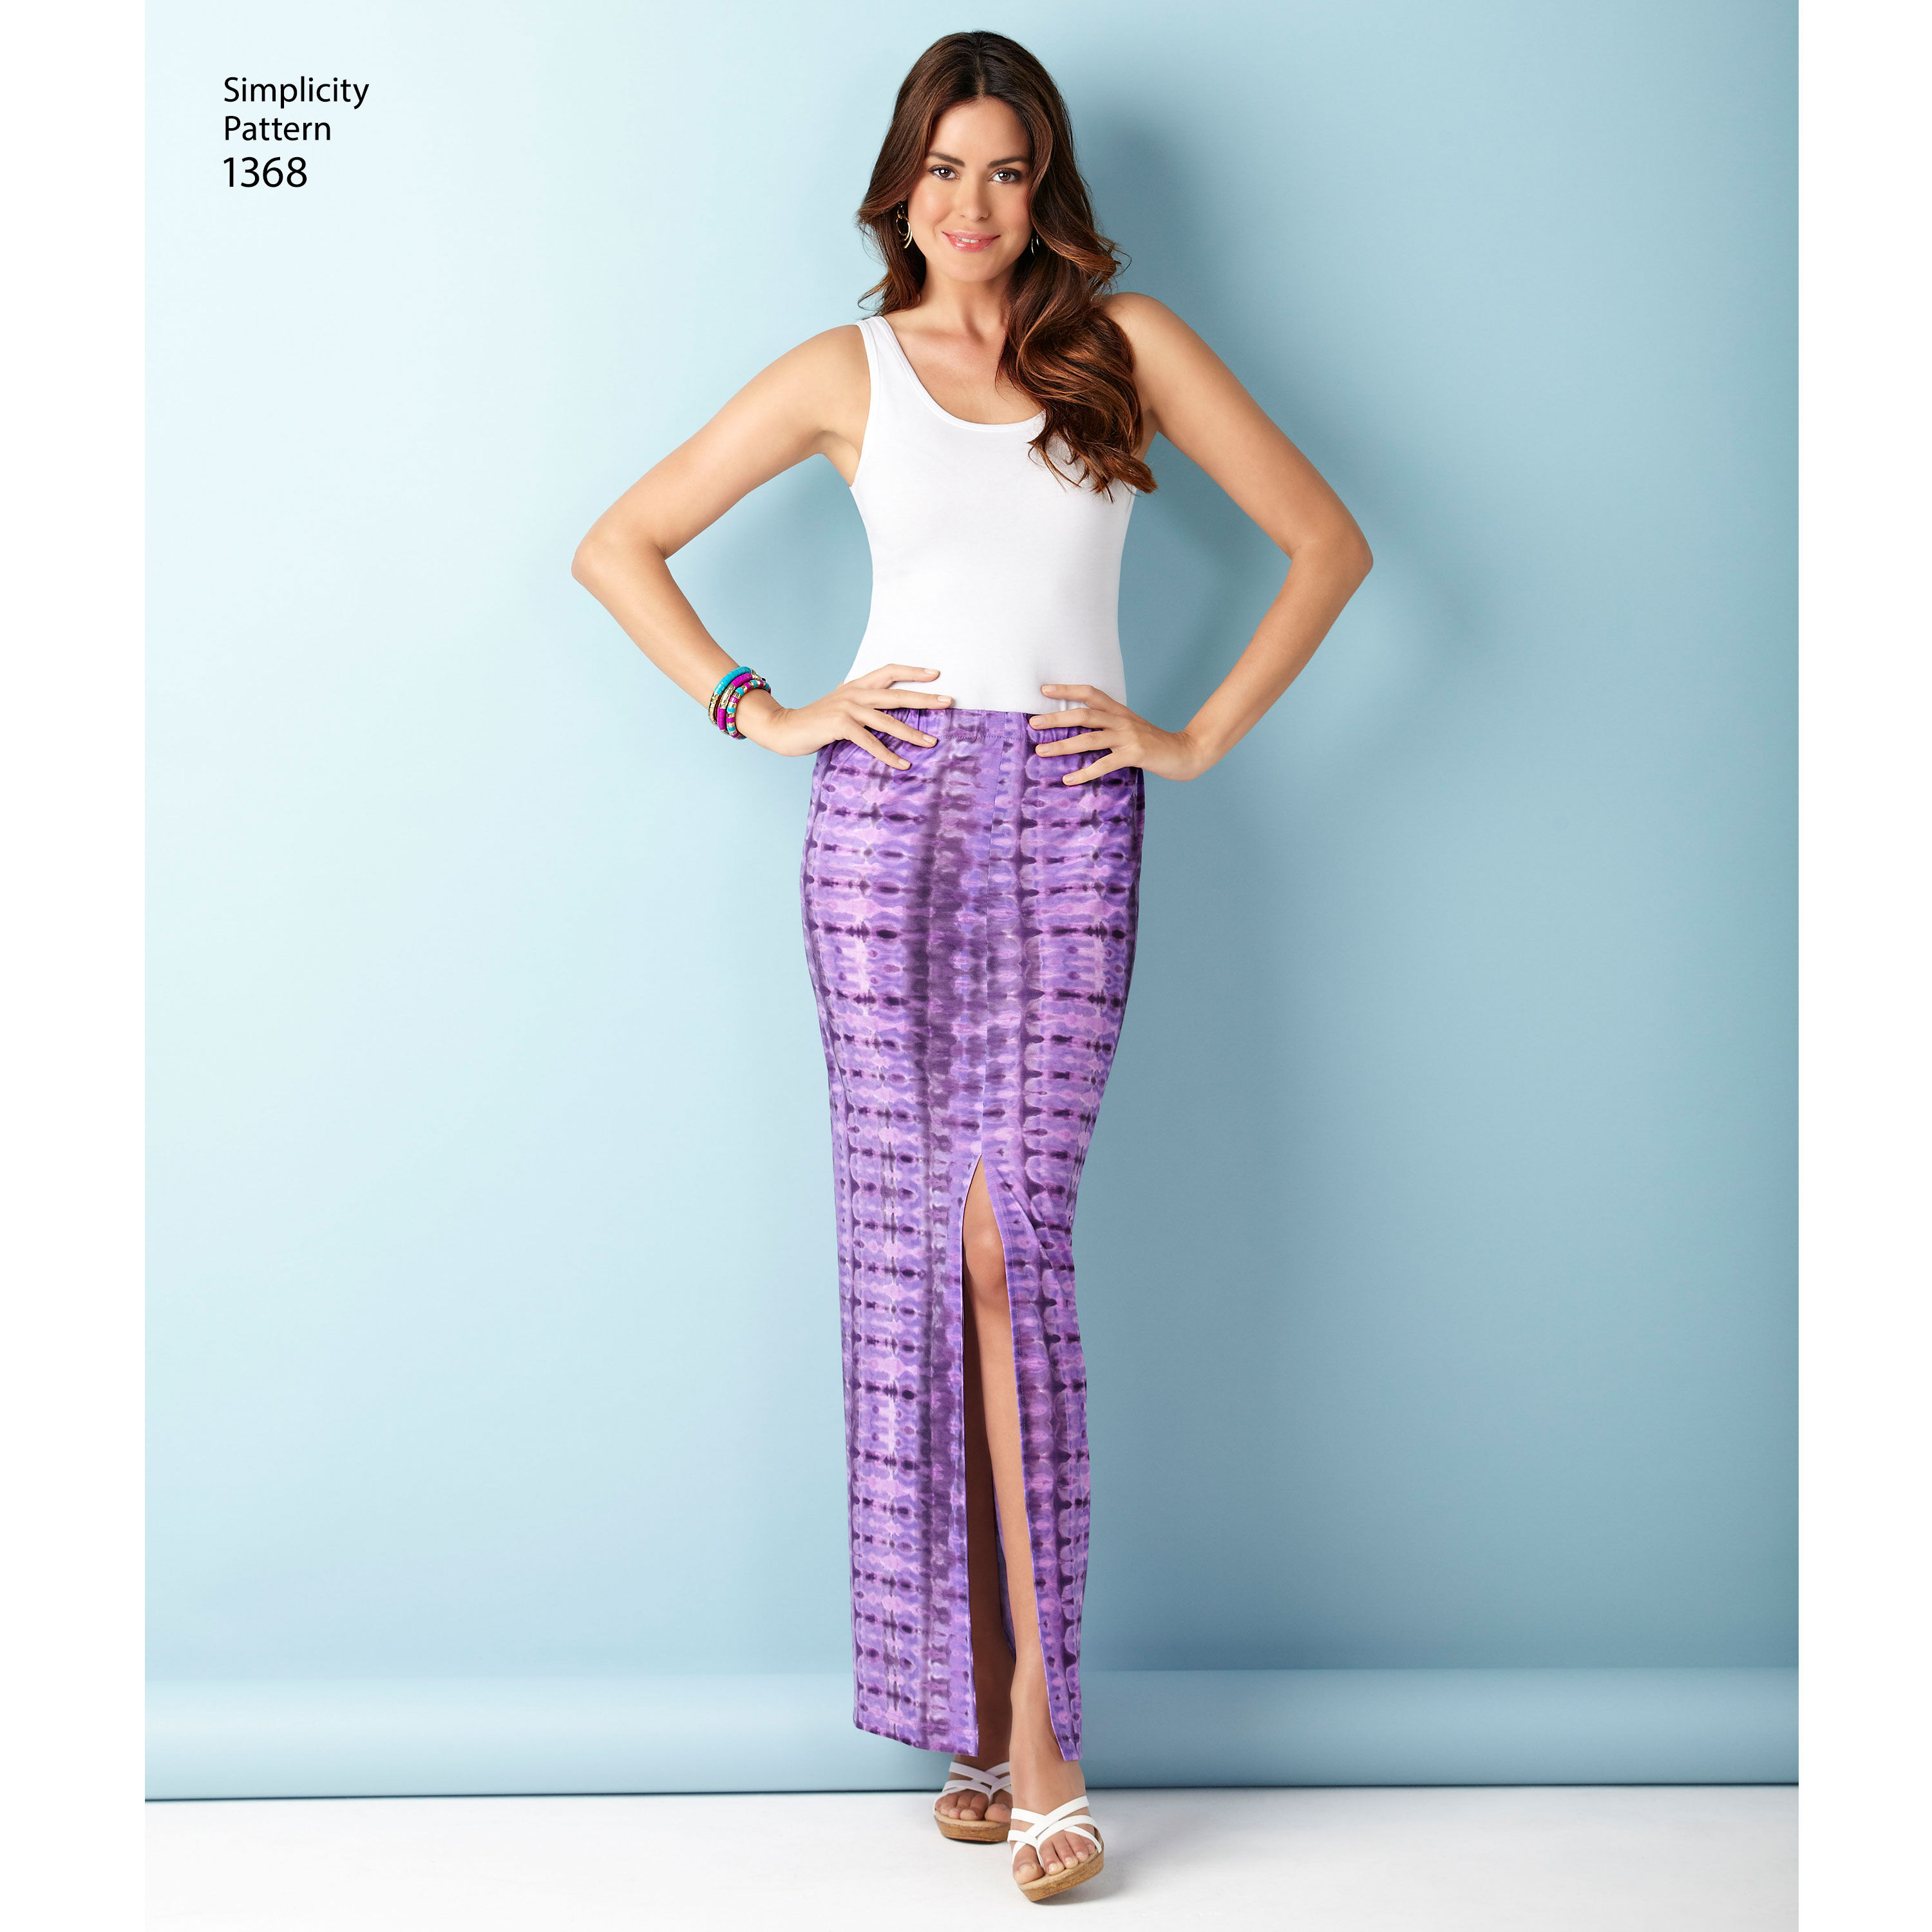 Image result for Simplicity 1368